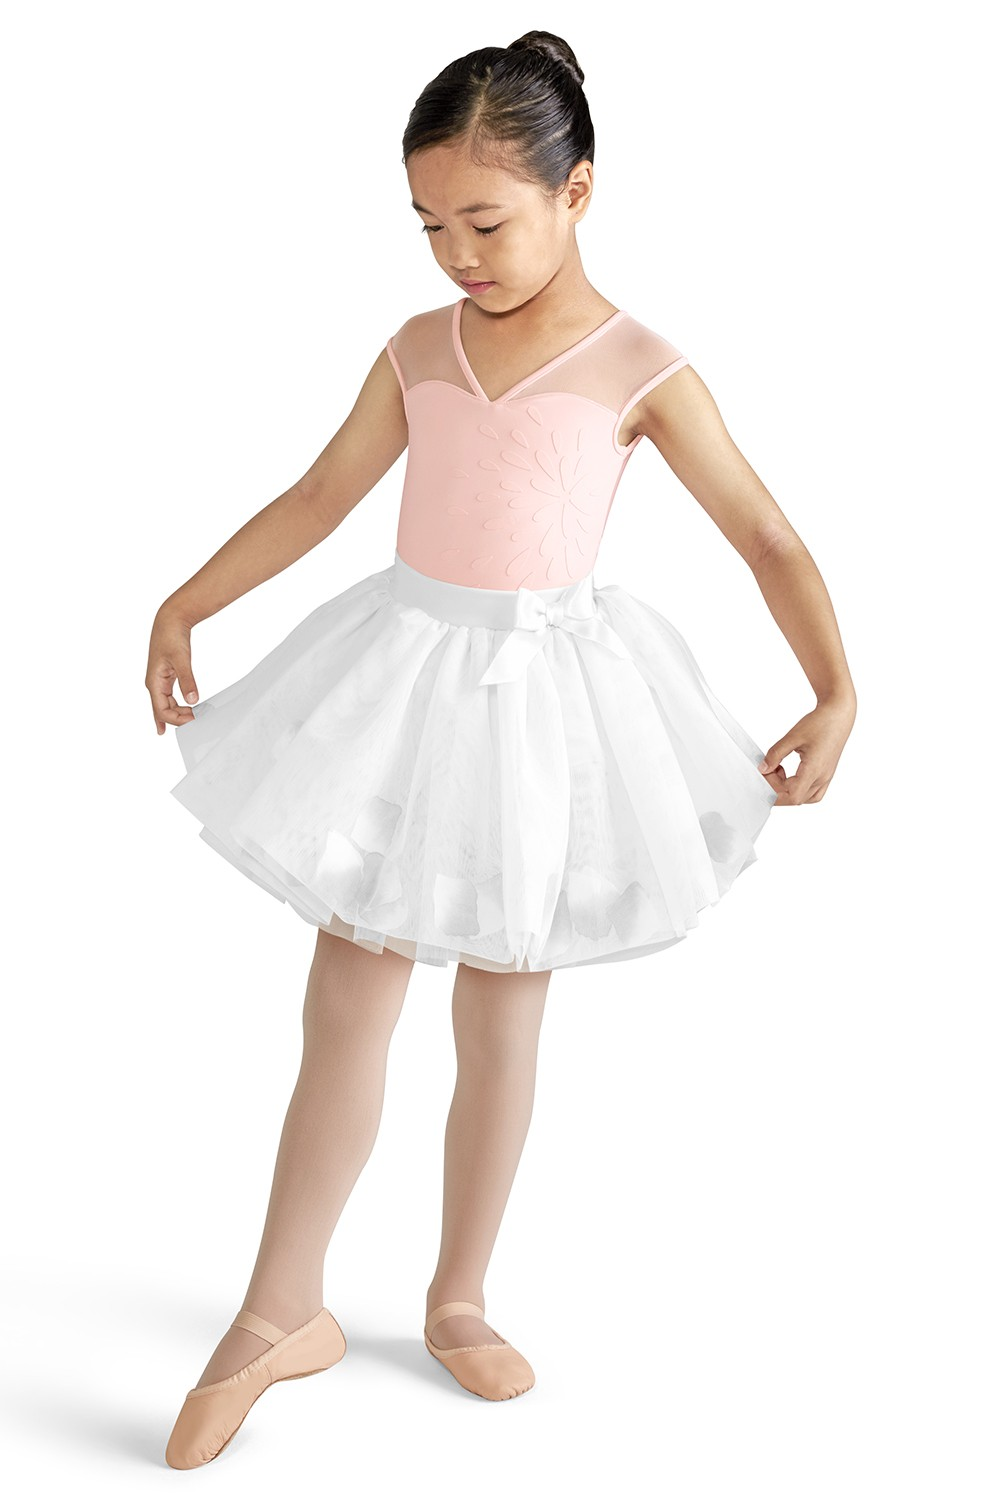 Bubble Tutu Skirt Children's Dance Skirts